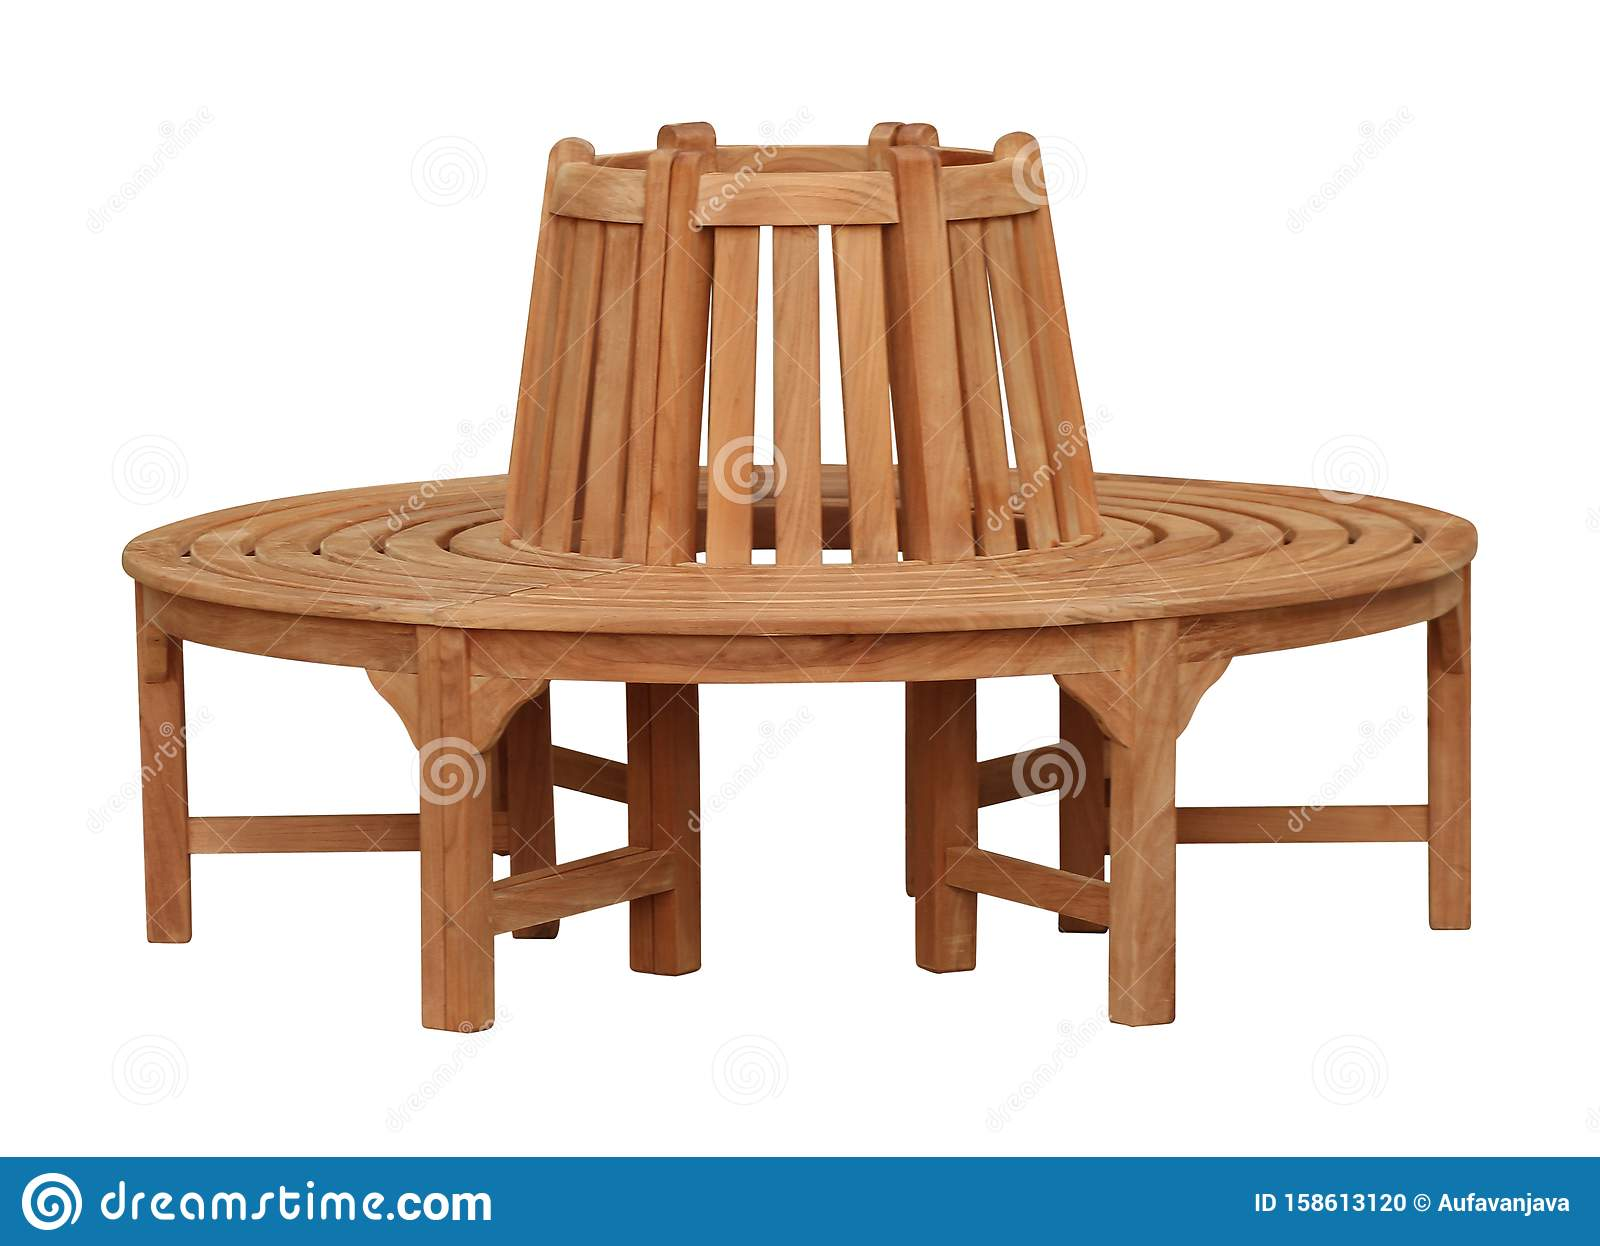 Wooden Bench Furniture For Outdoor Or Park Furniture Stock ...